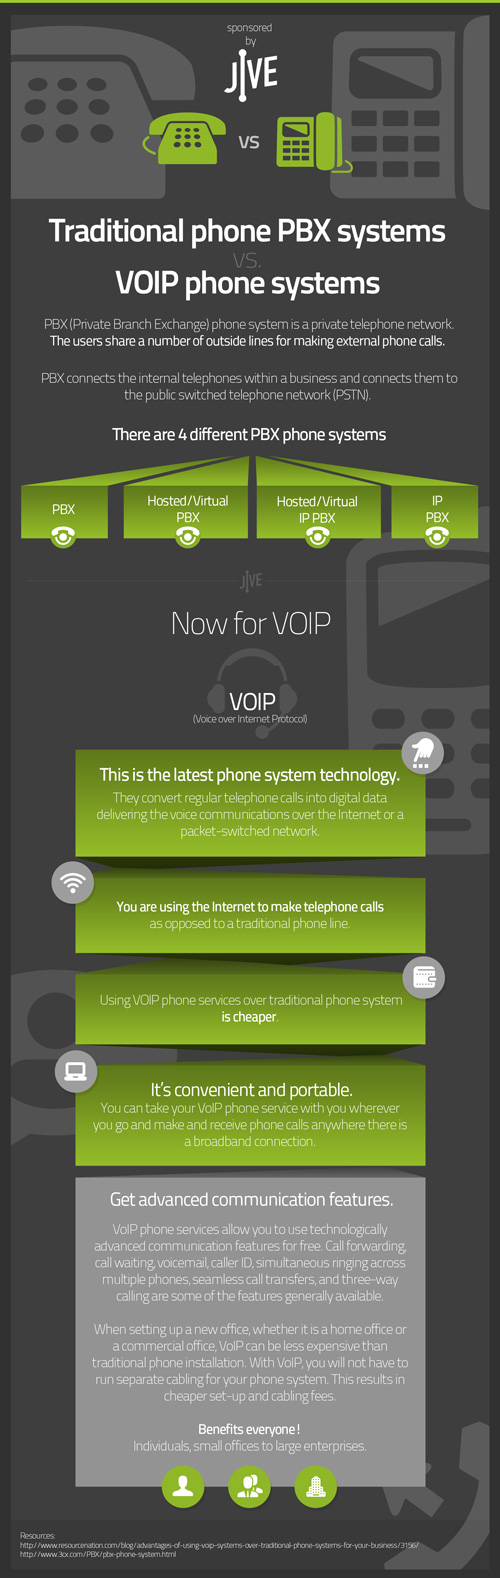 VOIP vs Traditional Telephony-Infographic